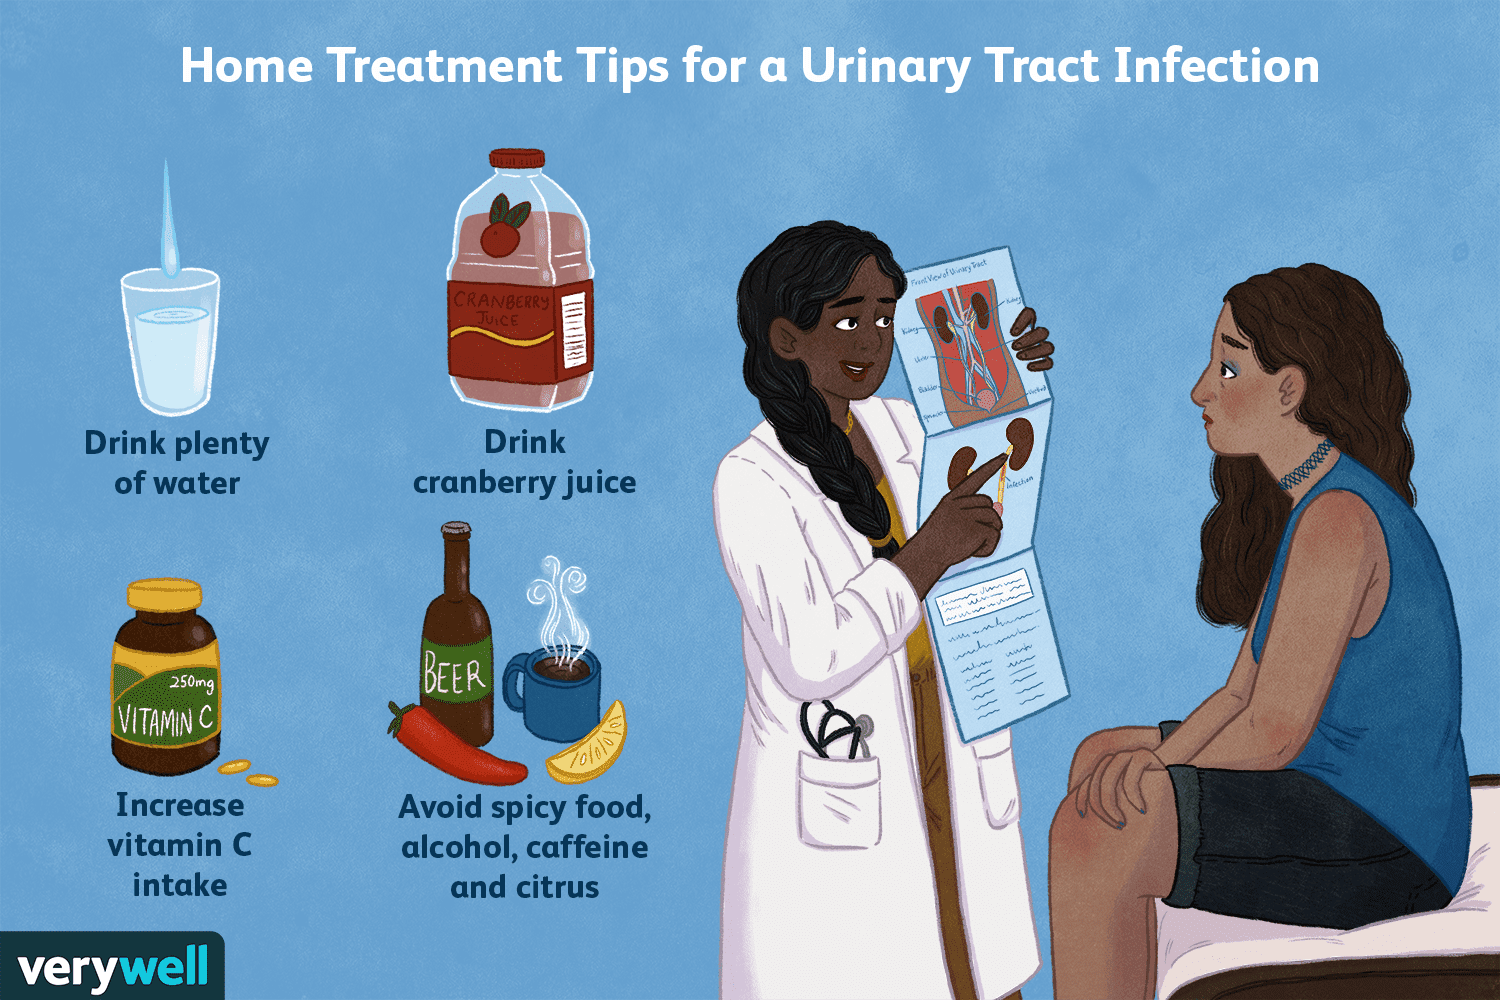 How a Urinary Tract Infection Is Treated